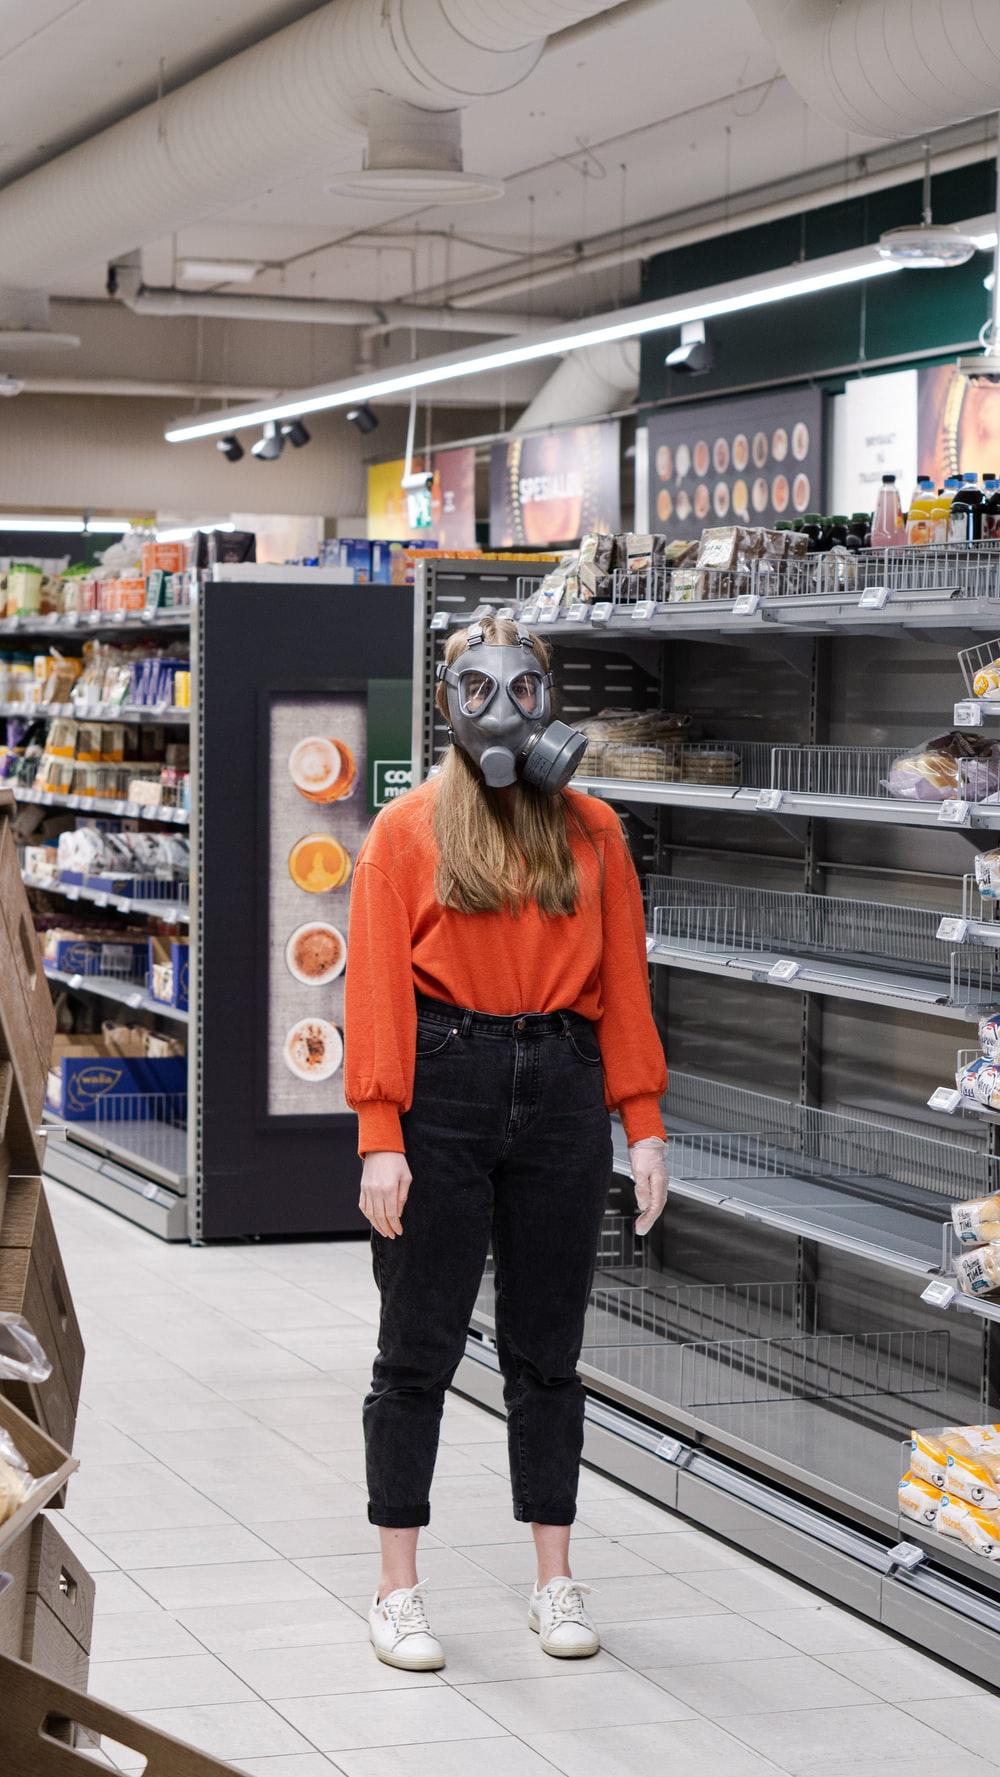 woman in orange jacket and black pants standing in grocery store